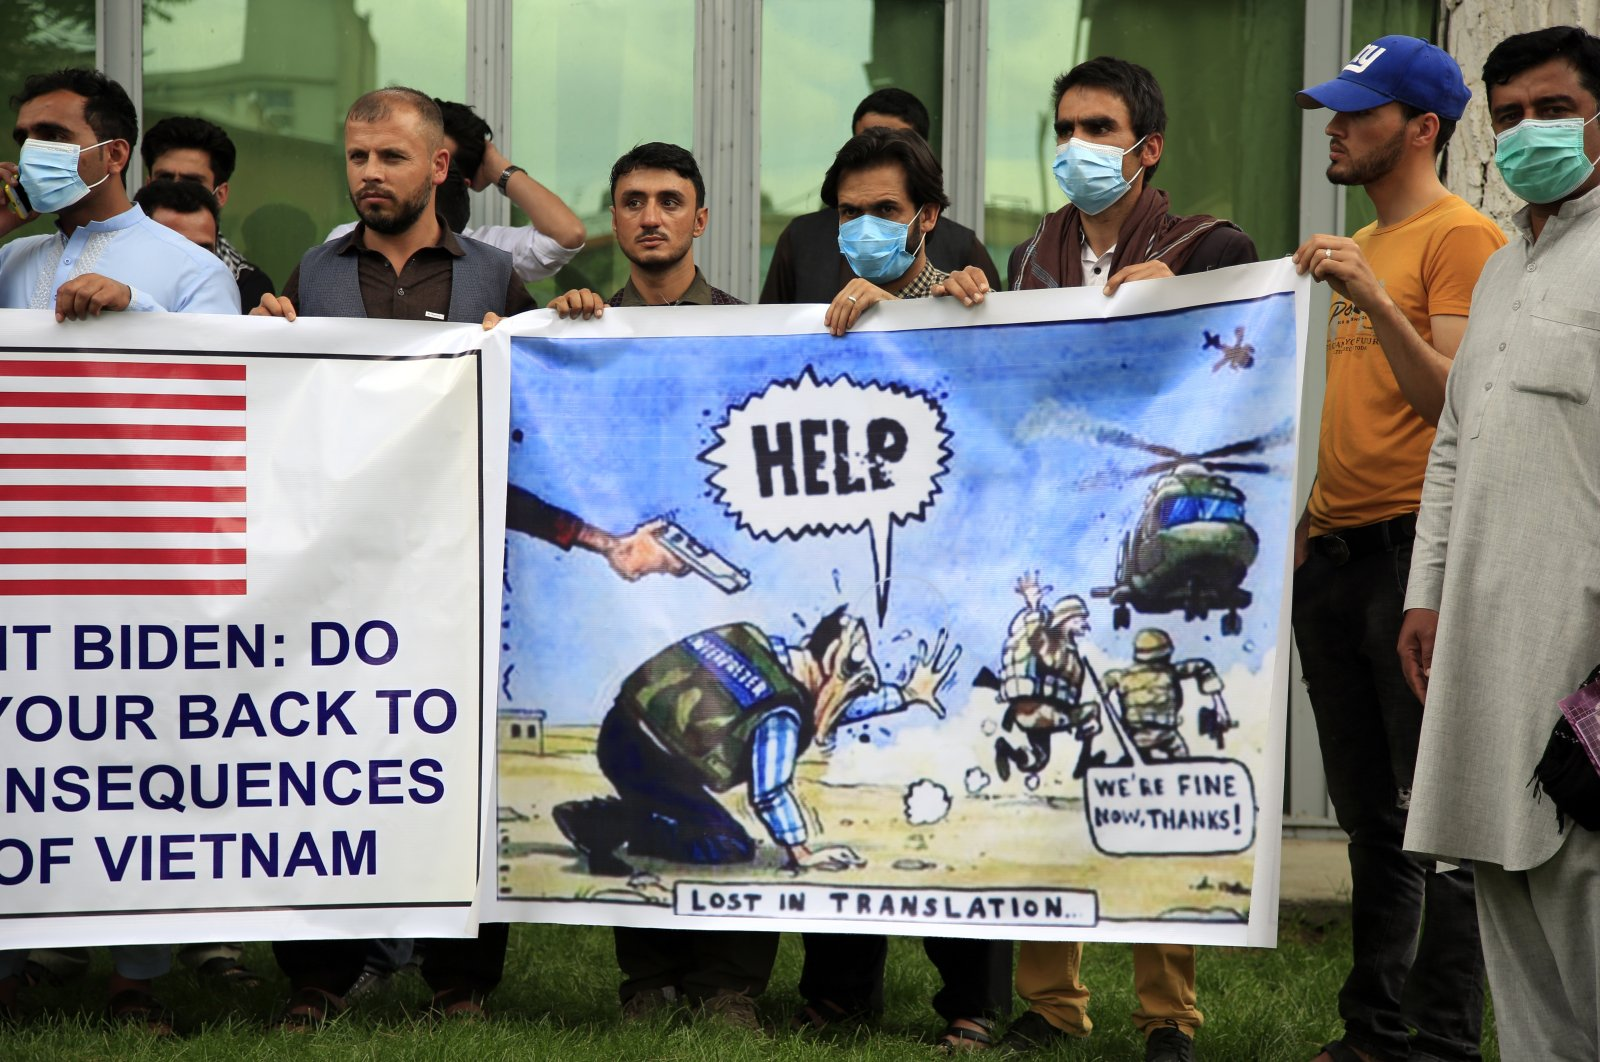 Afghan interpreters hold banners during a protest aimed at the U.S. government and NATO in Kabul, Afghanistan, April 30, 2021. (AP Photo)